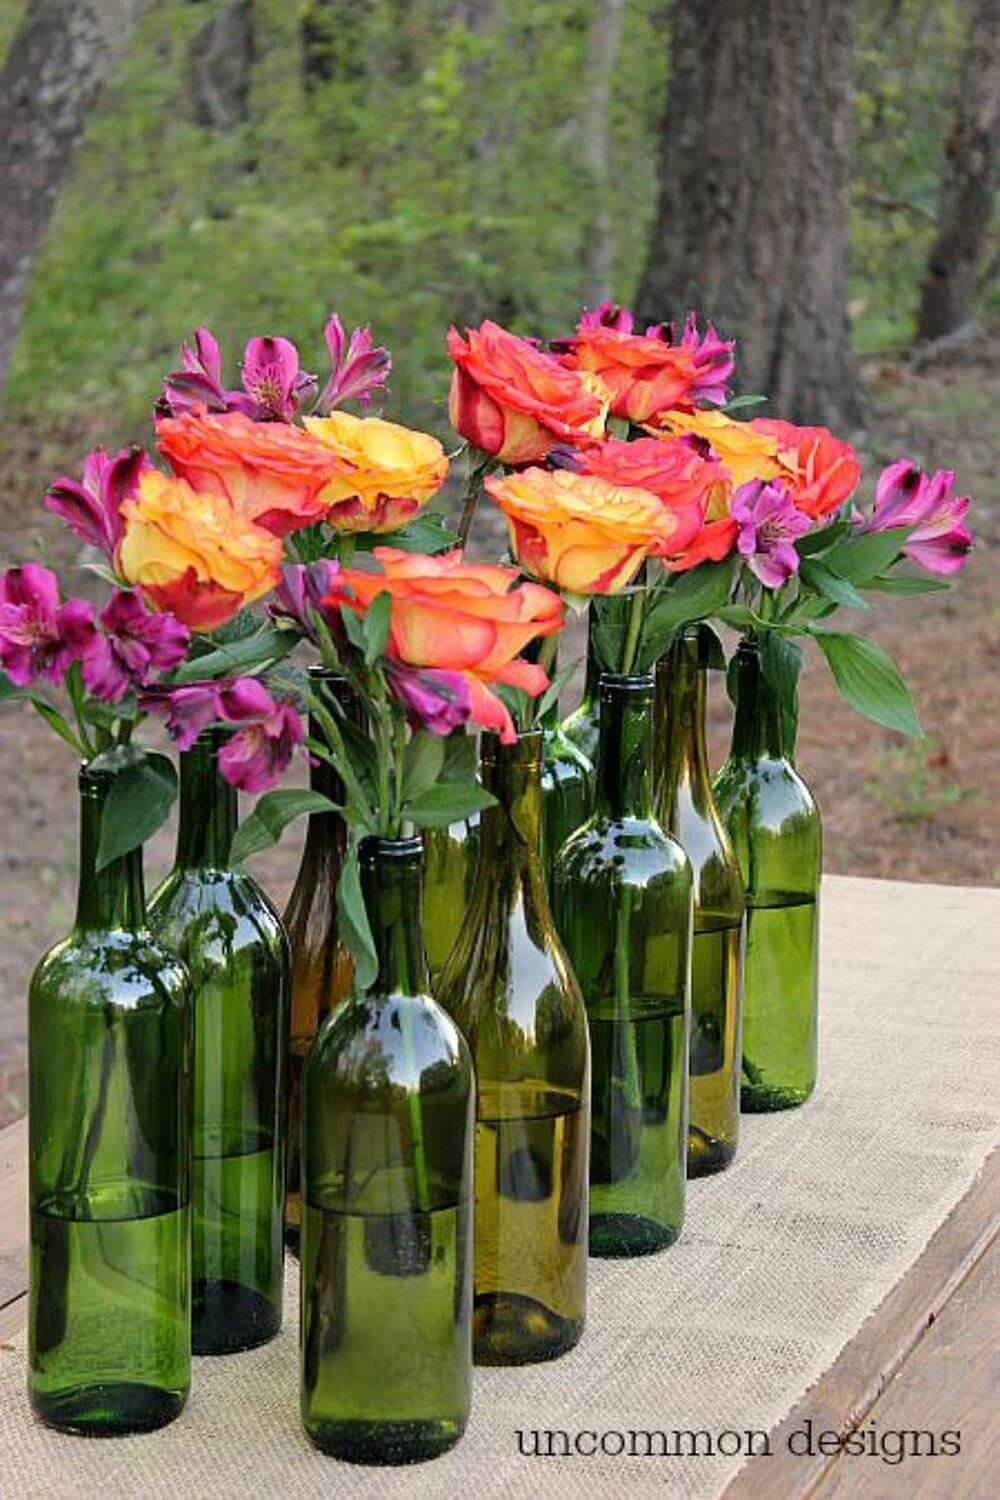 24 Creative Ways to Repurpose Your Empty Wine Bottles. Wine lovers, this one's for you. By Rori Kotch. Make your own side-table lamp using an upcycled wine bottle. Play up the bottle's shape with a simple lampshade. Brighten fall decor with bottle display painted to resemble candy corn, or use whatever colors you'd like and display them.